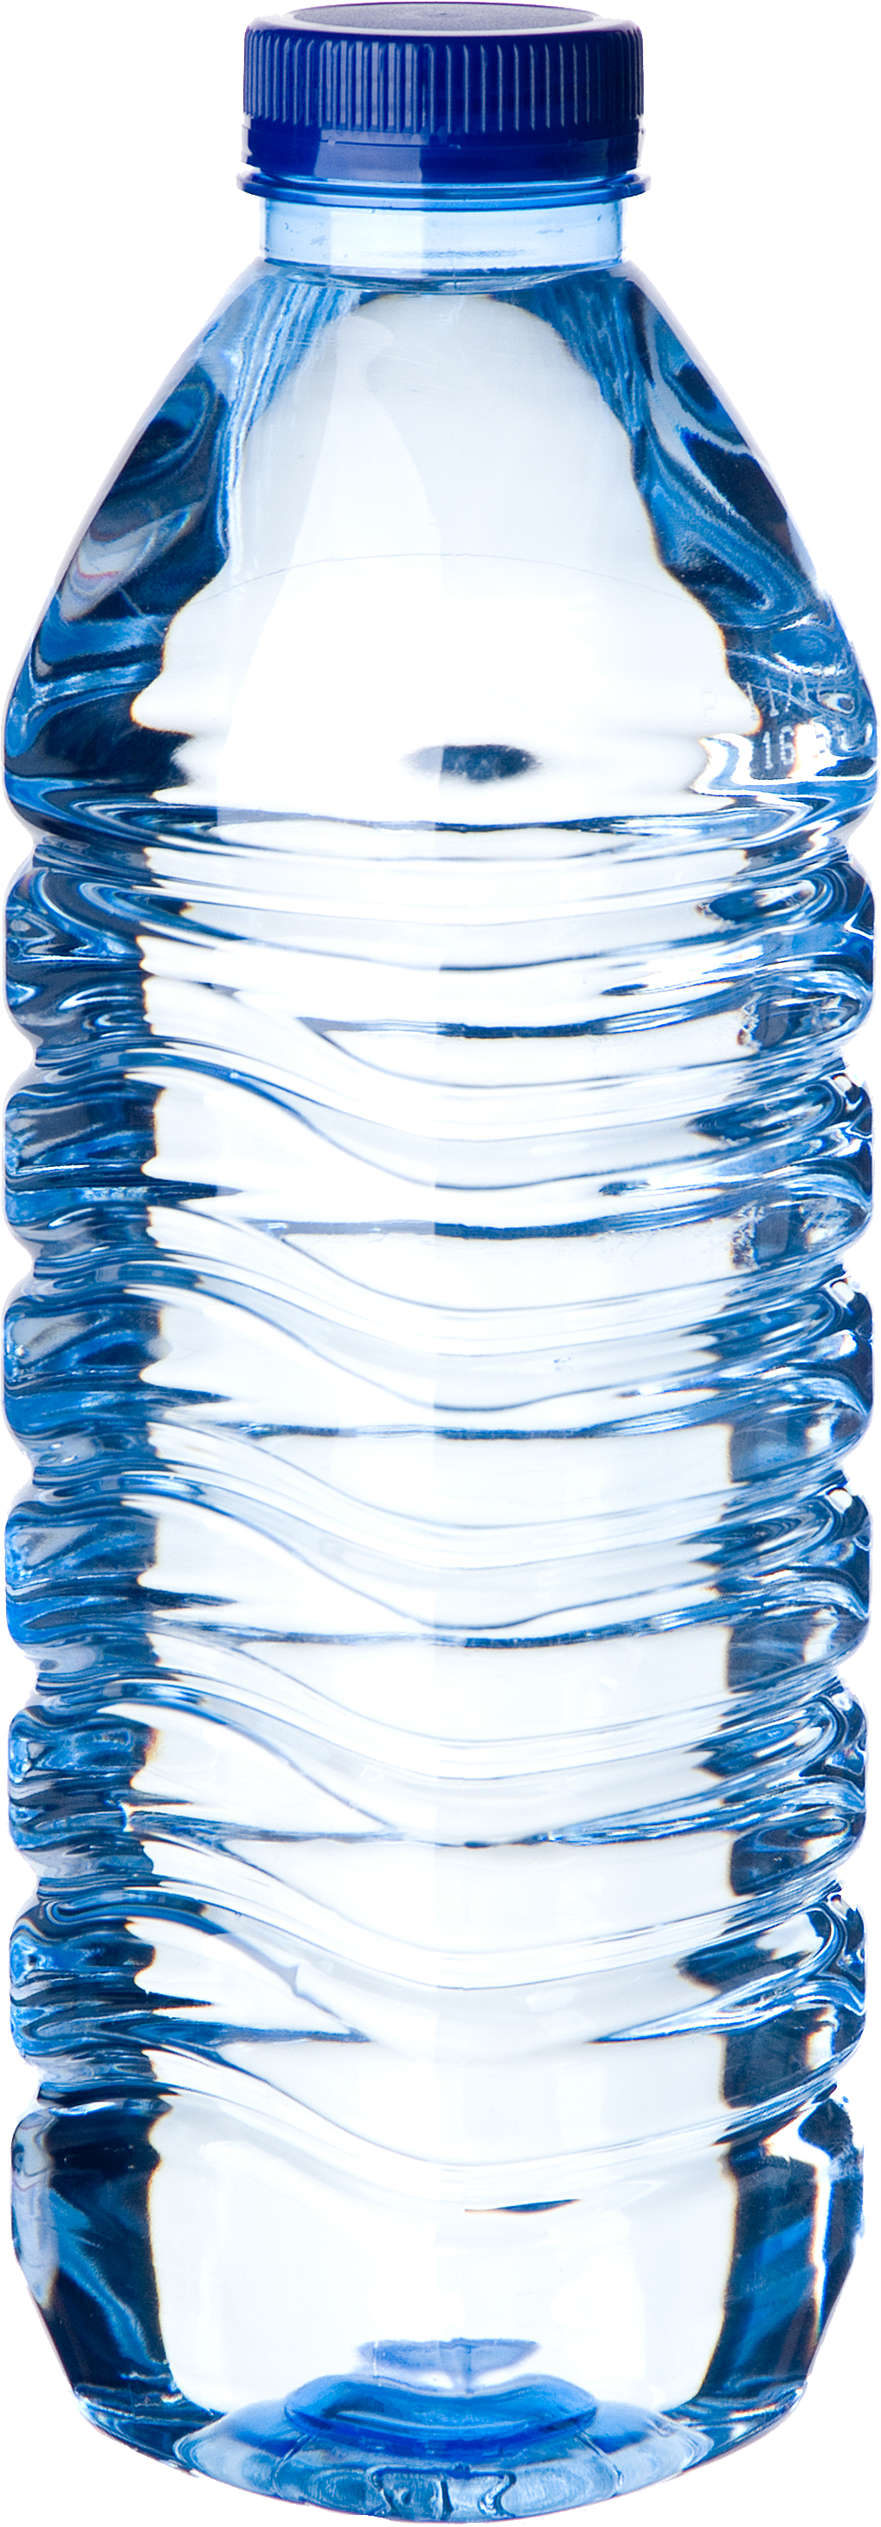 Water bottle png. Images free download image